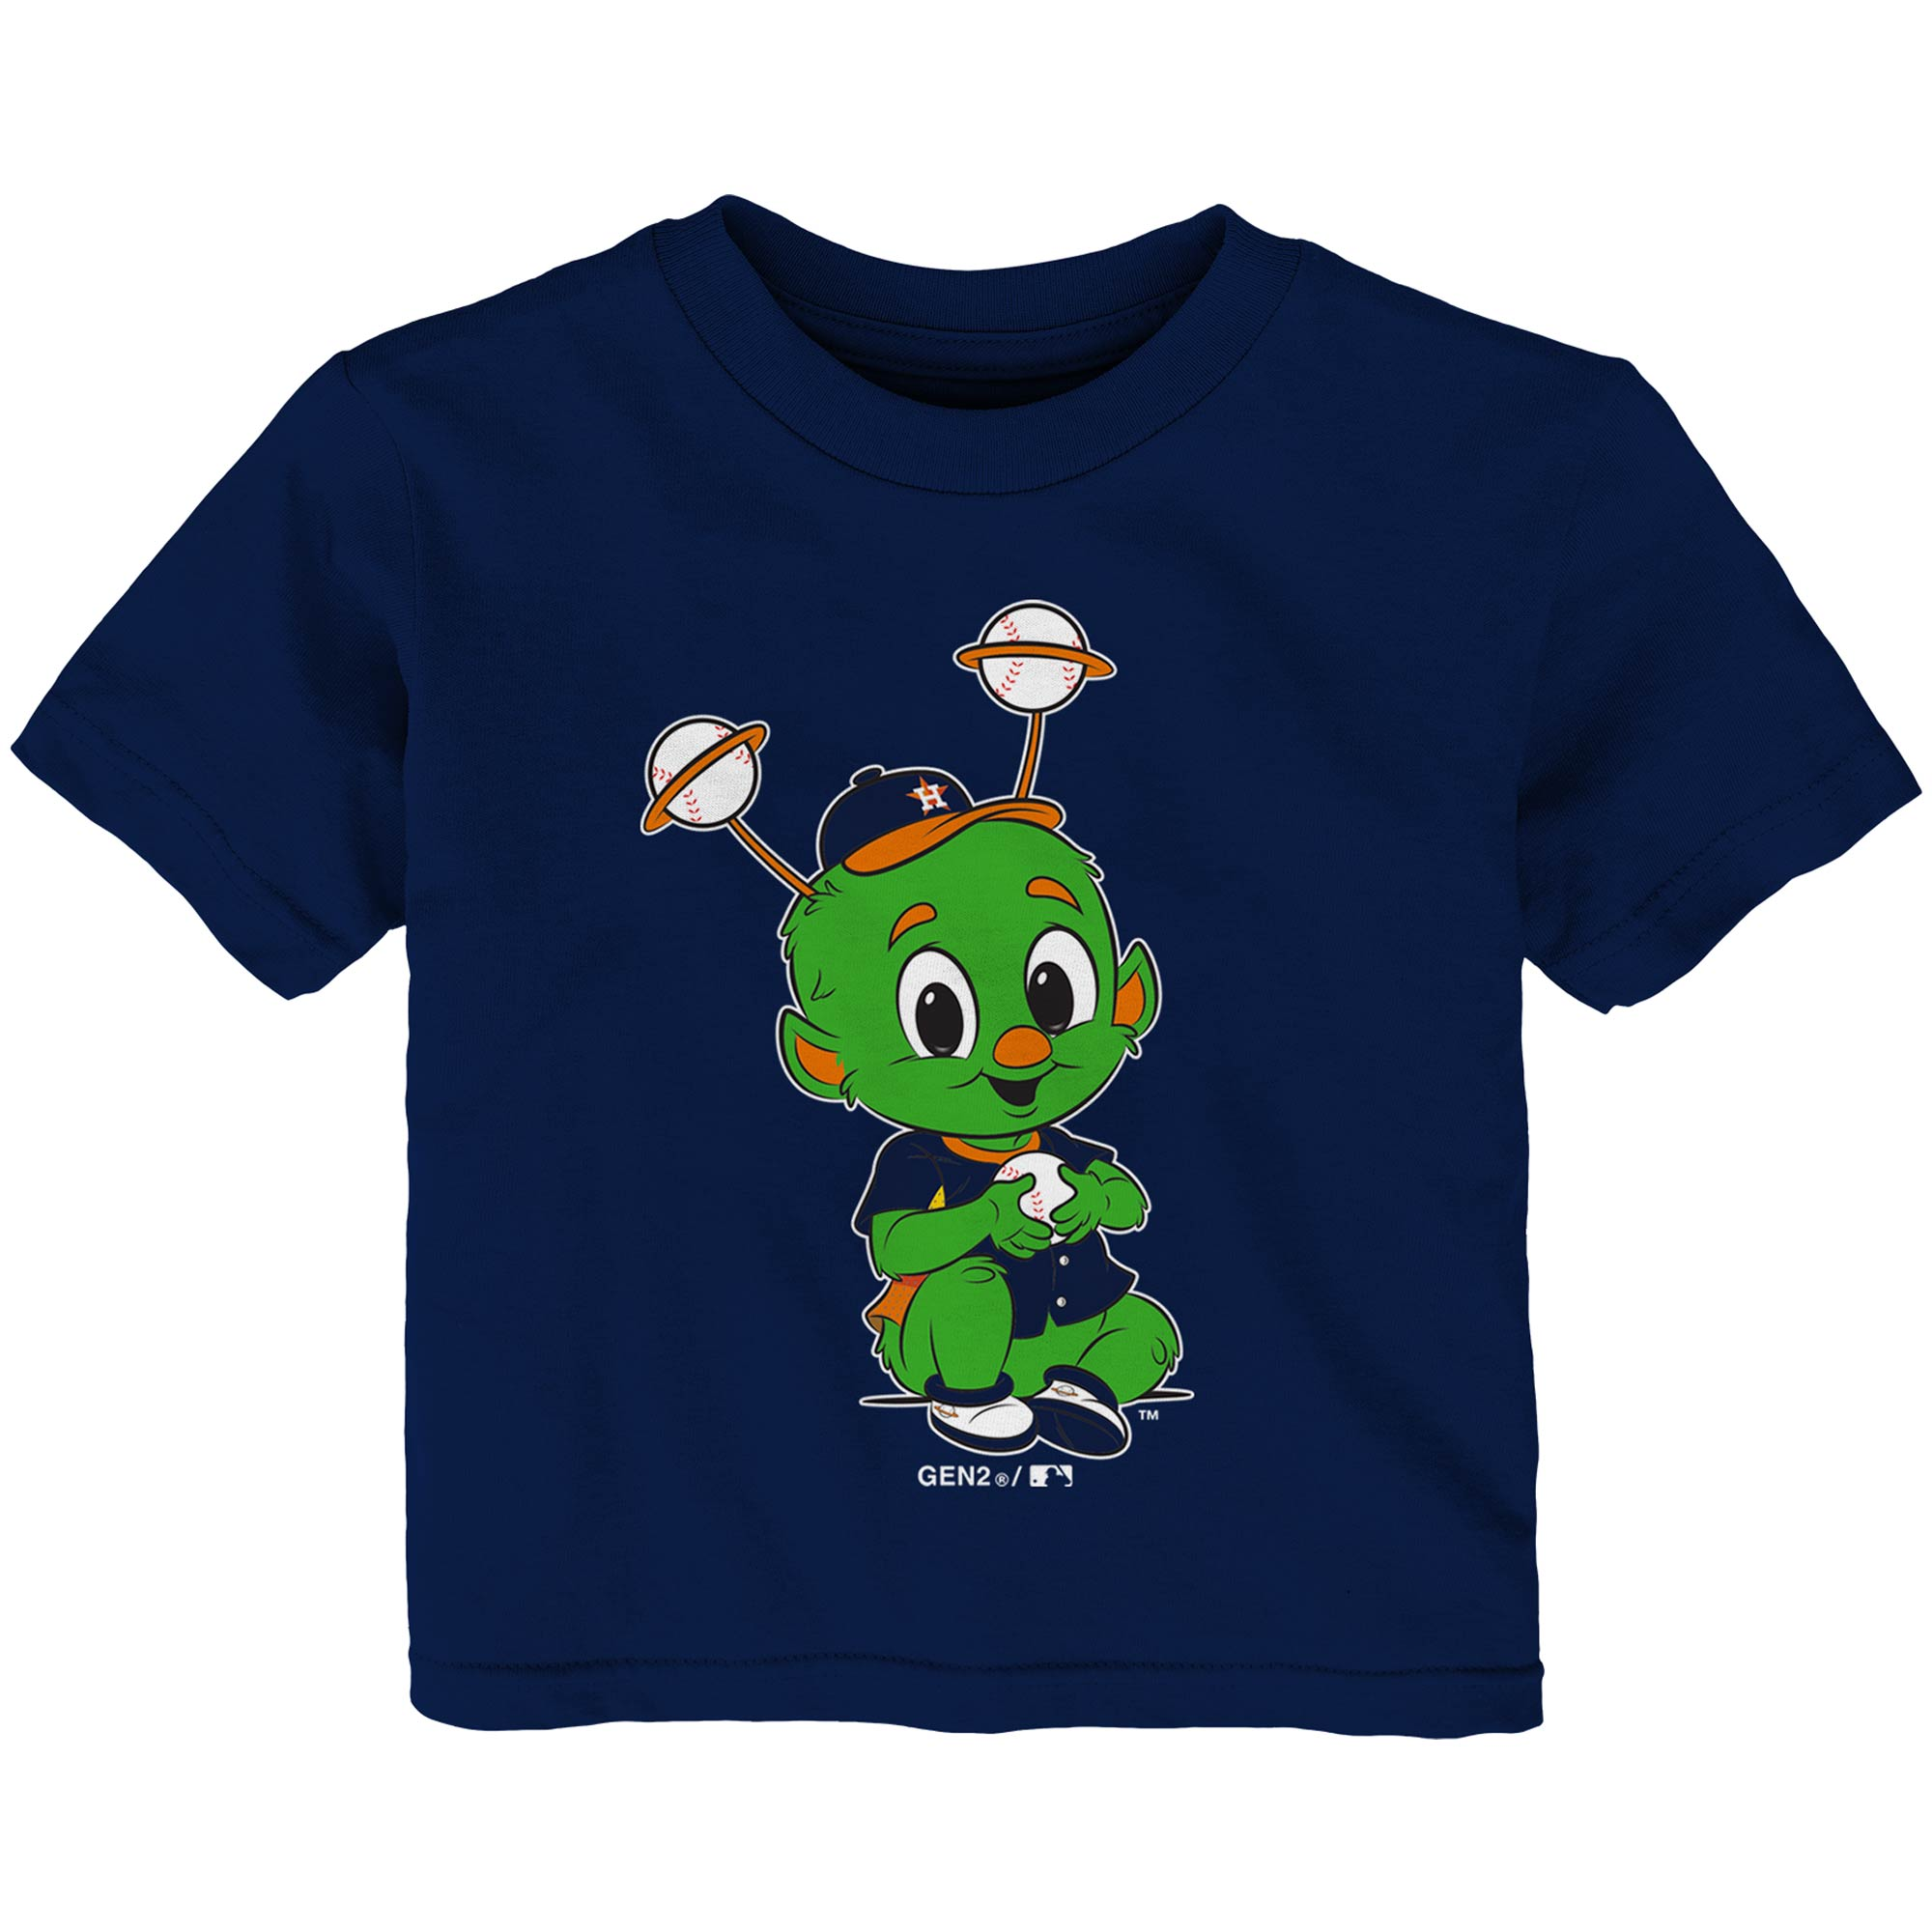 Houston Astros Infant Baby Mascot T-Shirt - Navy